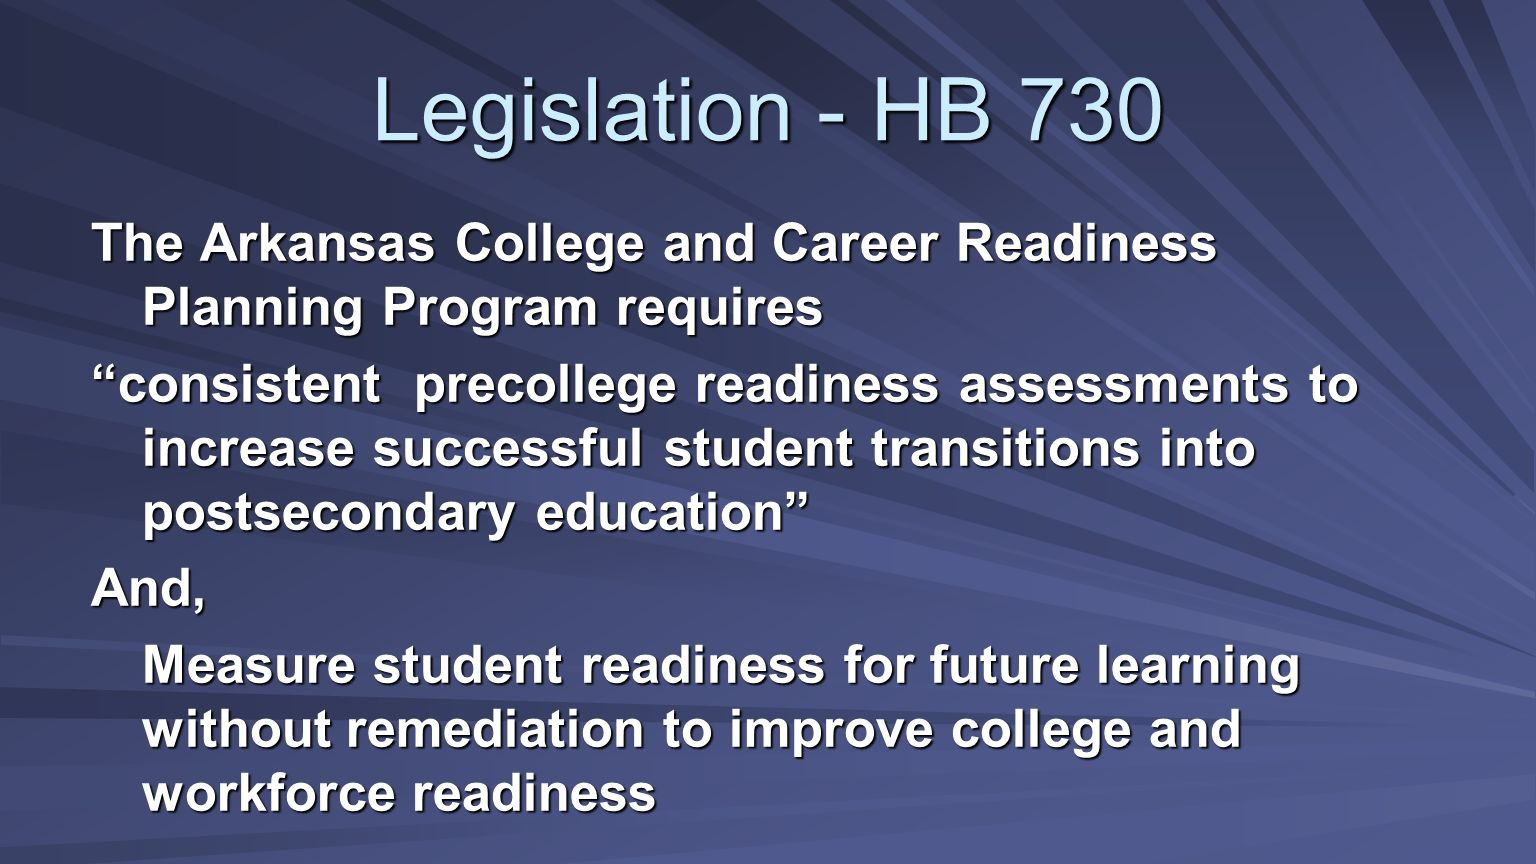 Legislation - HB 730 The Arkansas College and Career Readiness Planning Program requires consistent precollege readiness assessments to increase succe